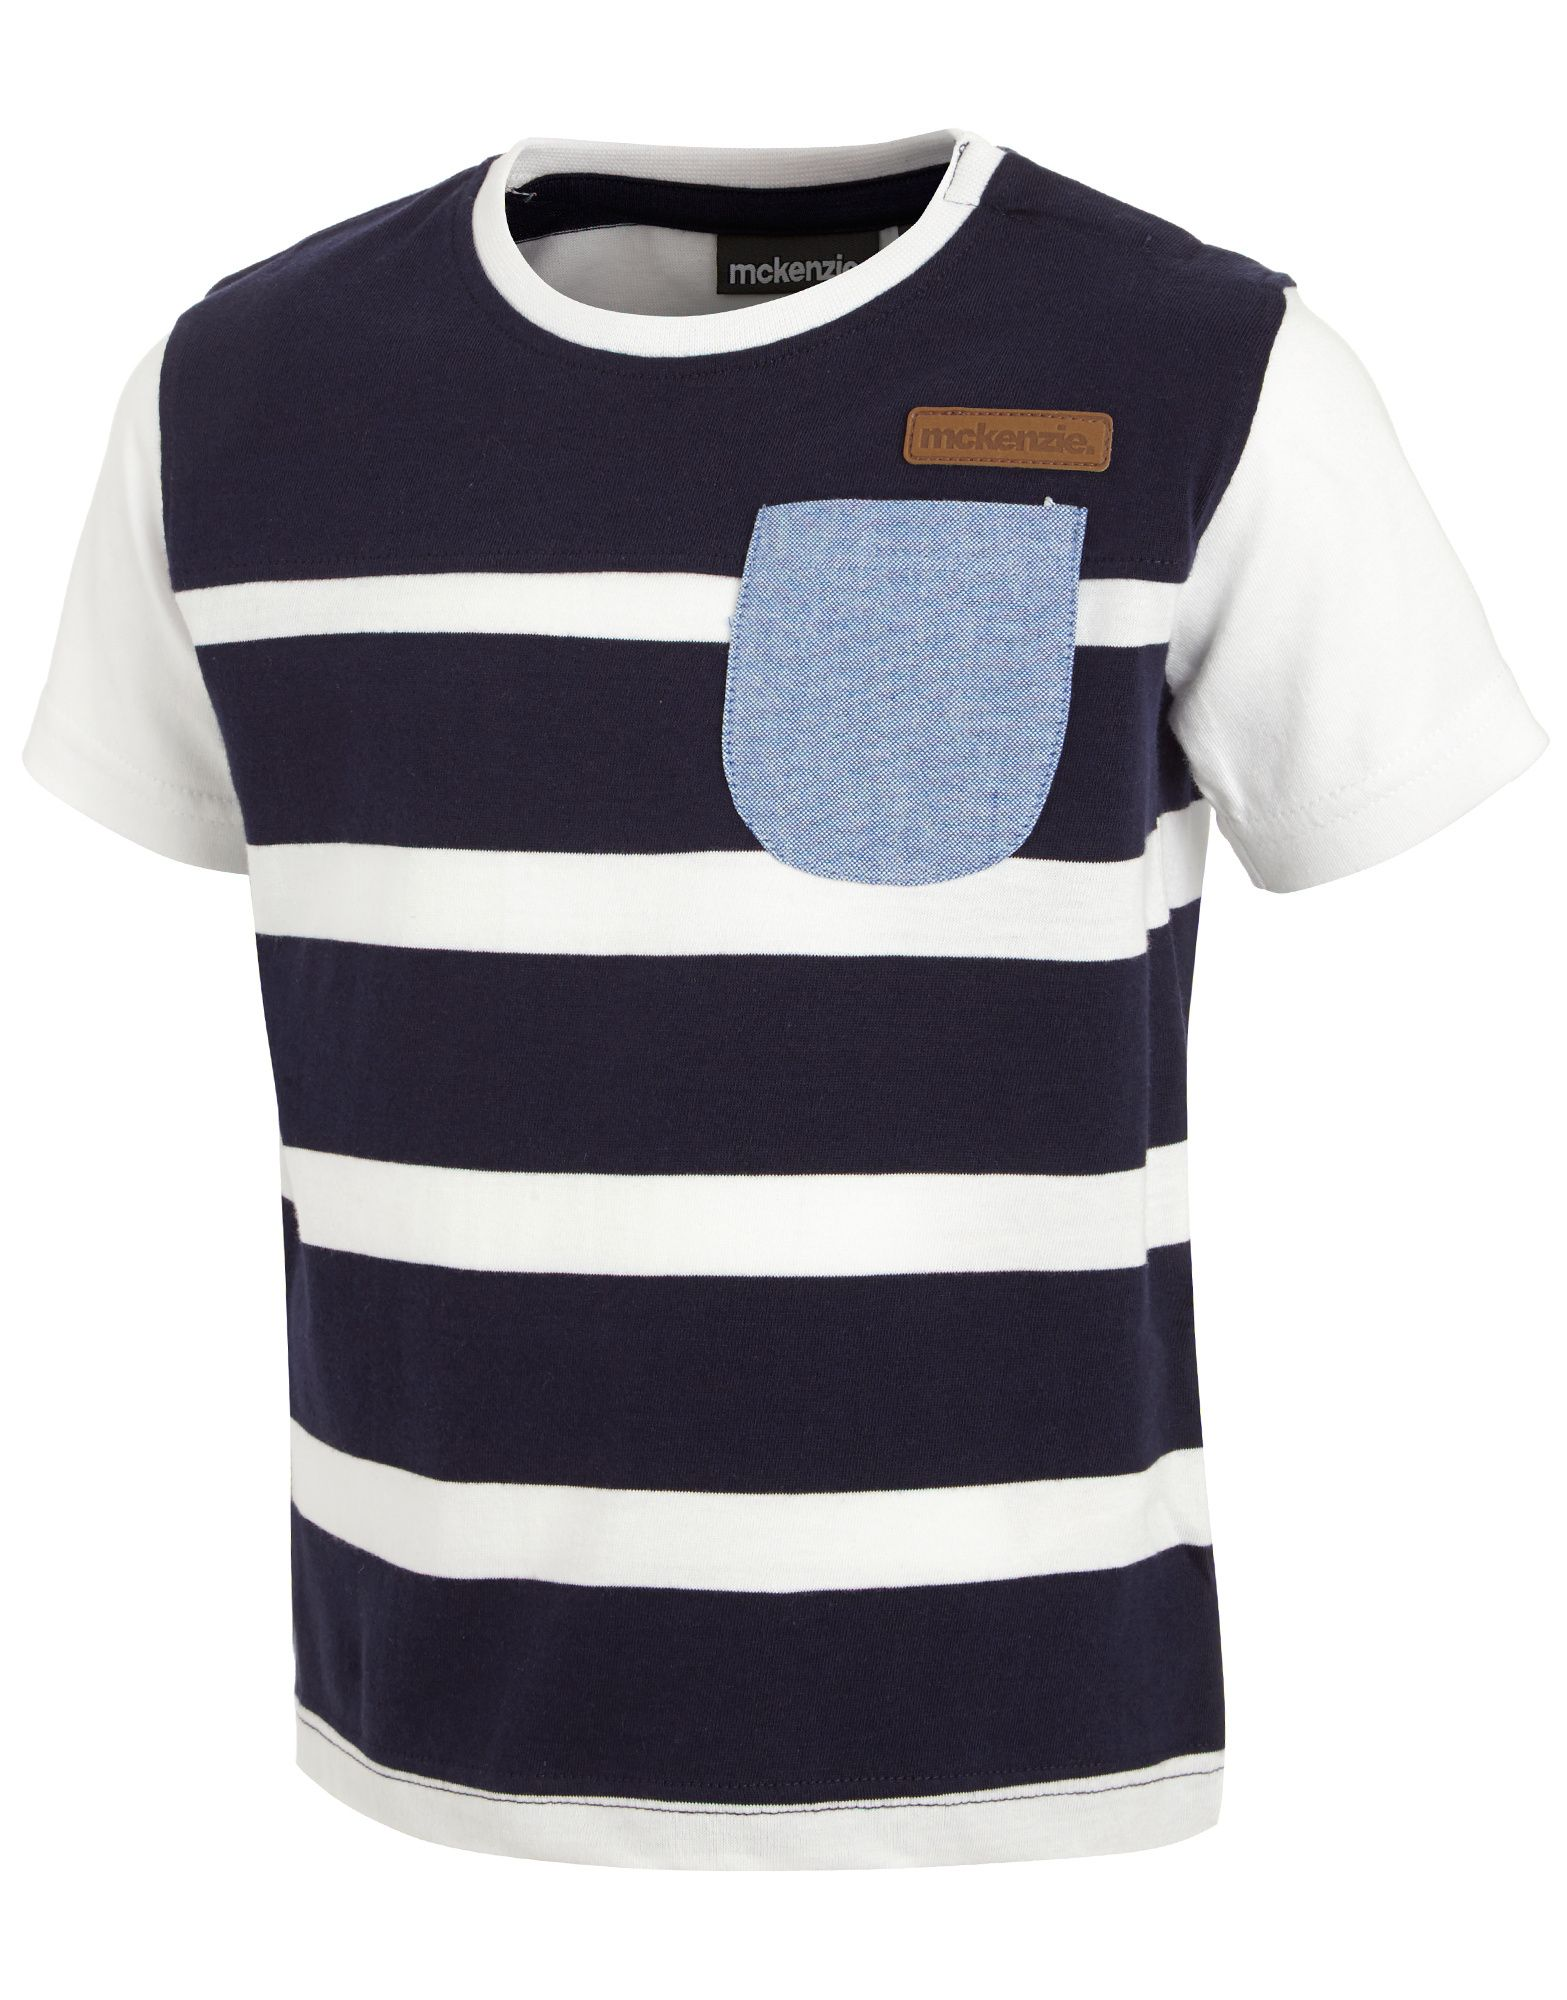 McKenzie Bower Stripe T-Shirt Infants